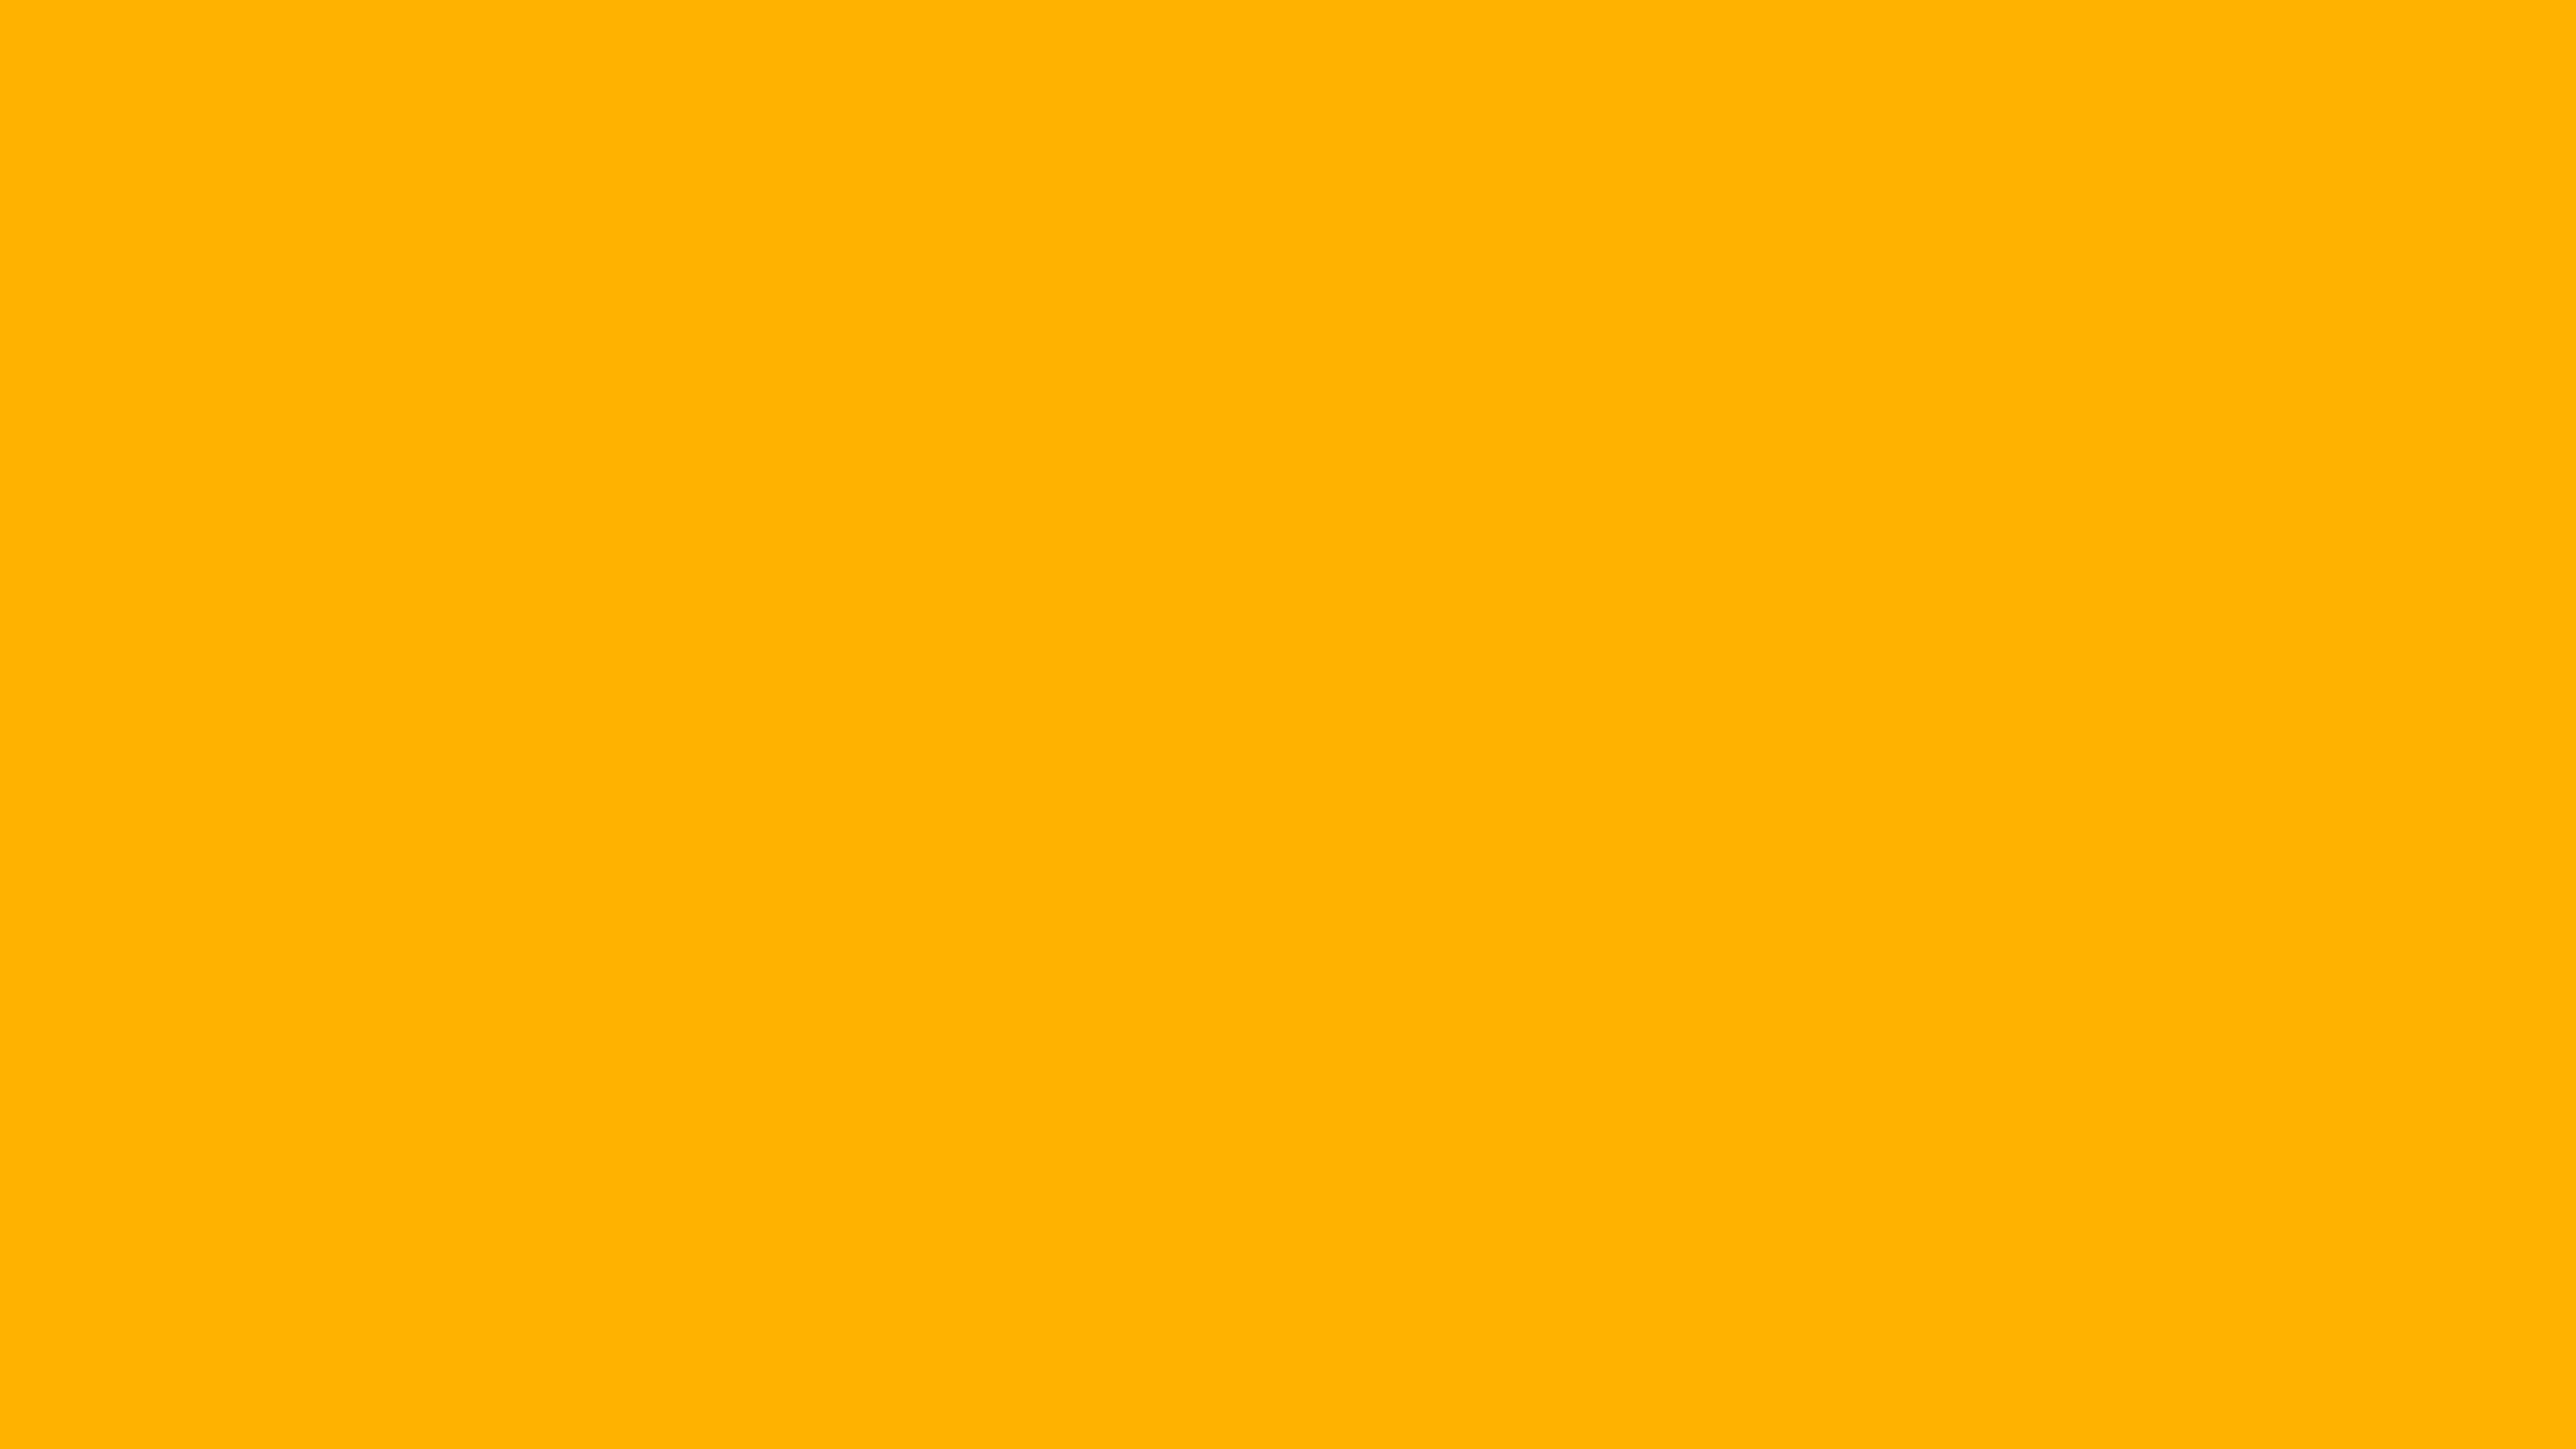 7680x4320 UCLA Gold Solid Color Background